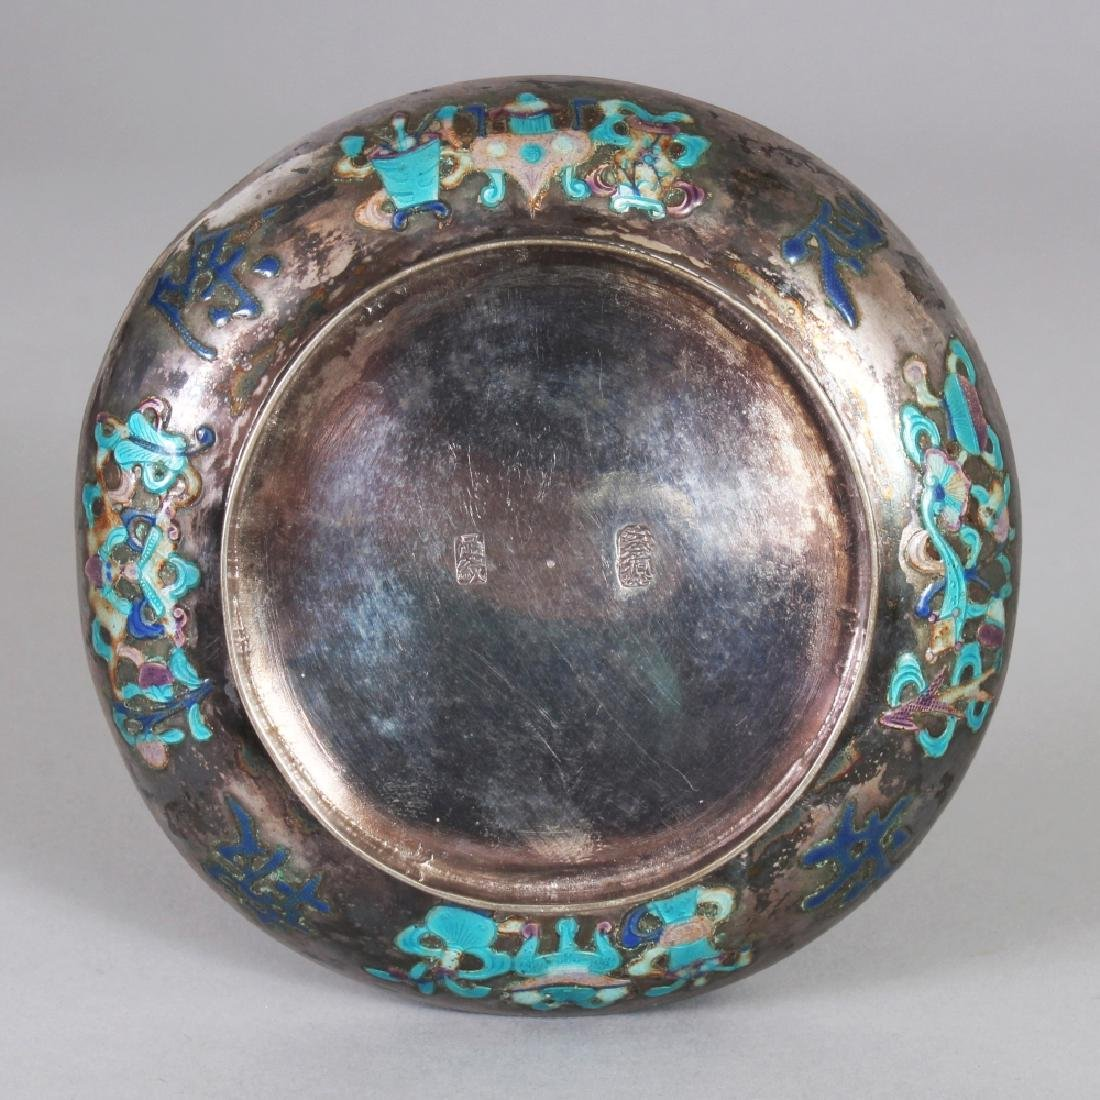 A GOOD QUALITY LATE 19TH/EARLY 20TH CENTURY CHINESE - 3